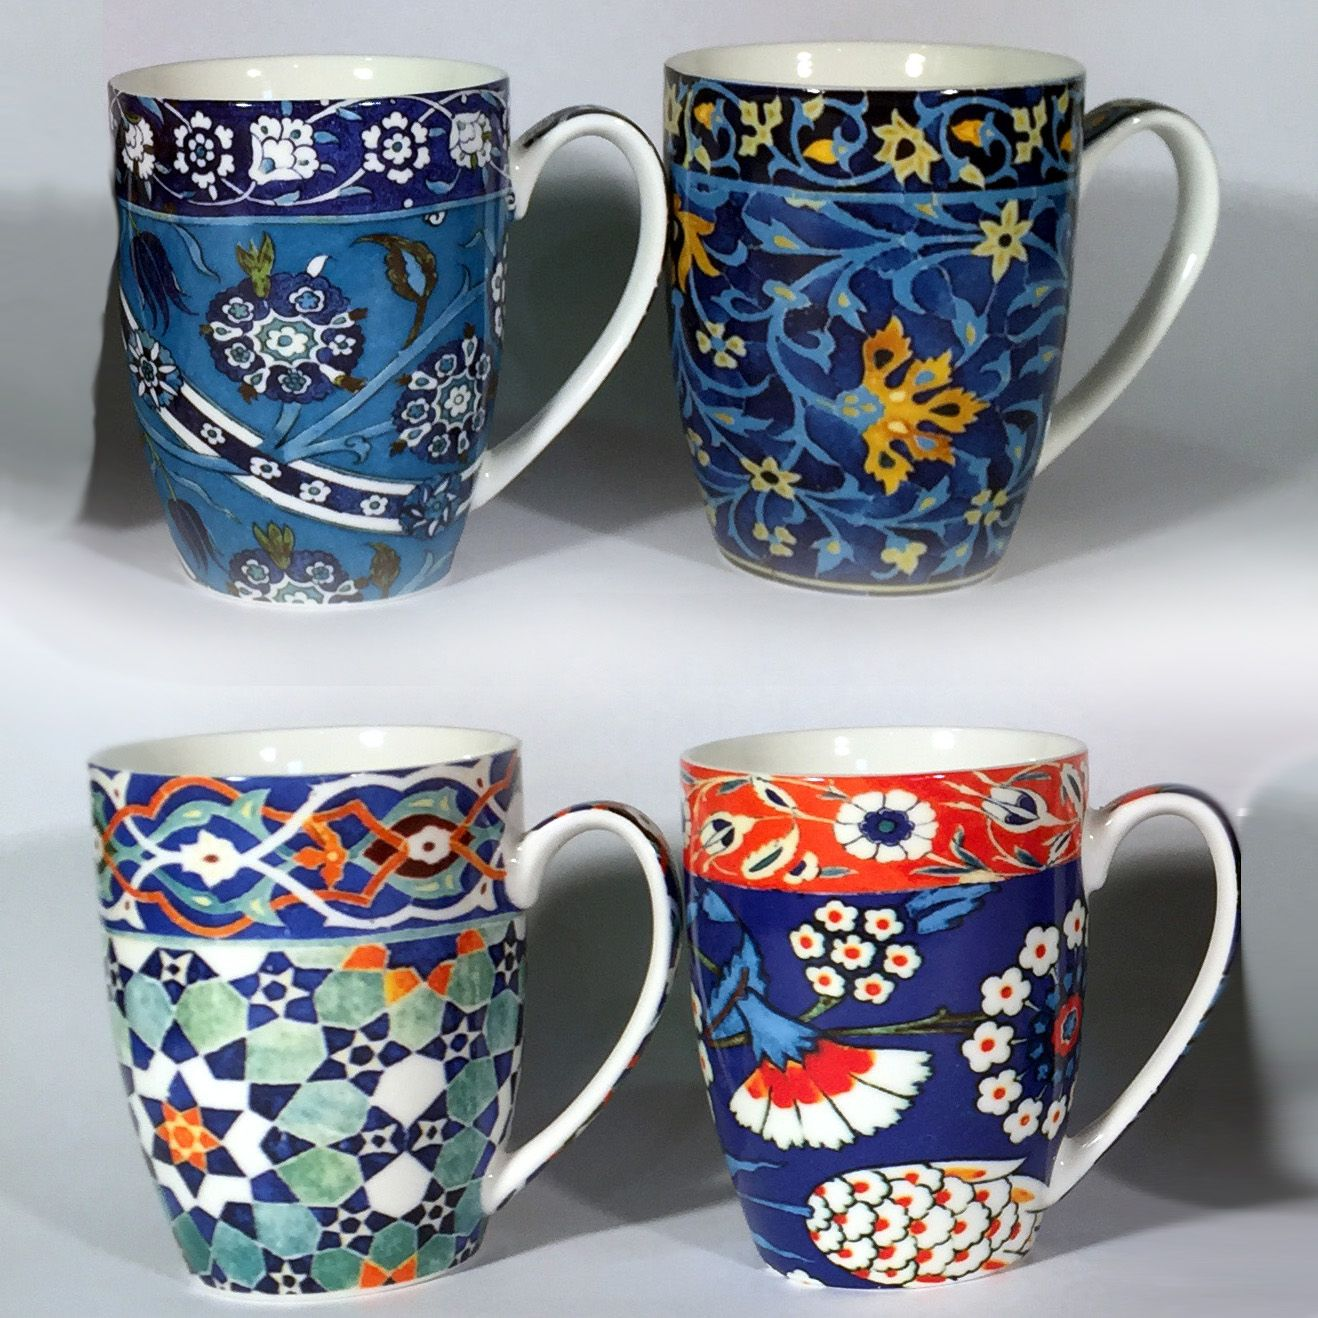 Four-piece boxed mug set. Matching placemats & coasters also available.